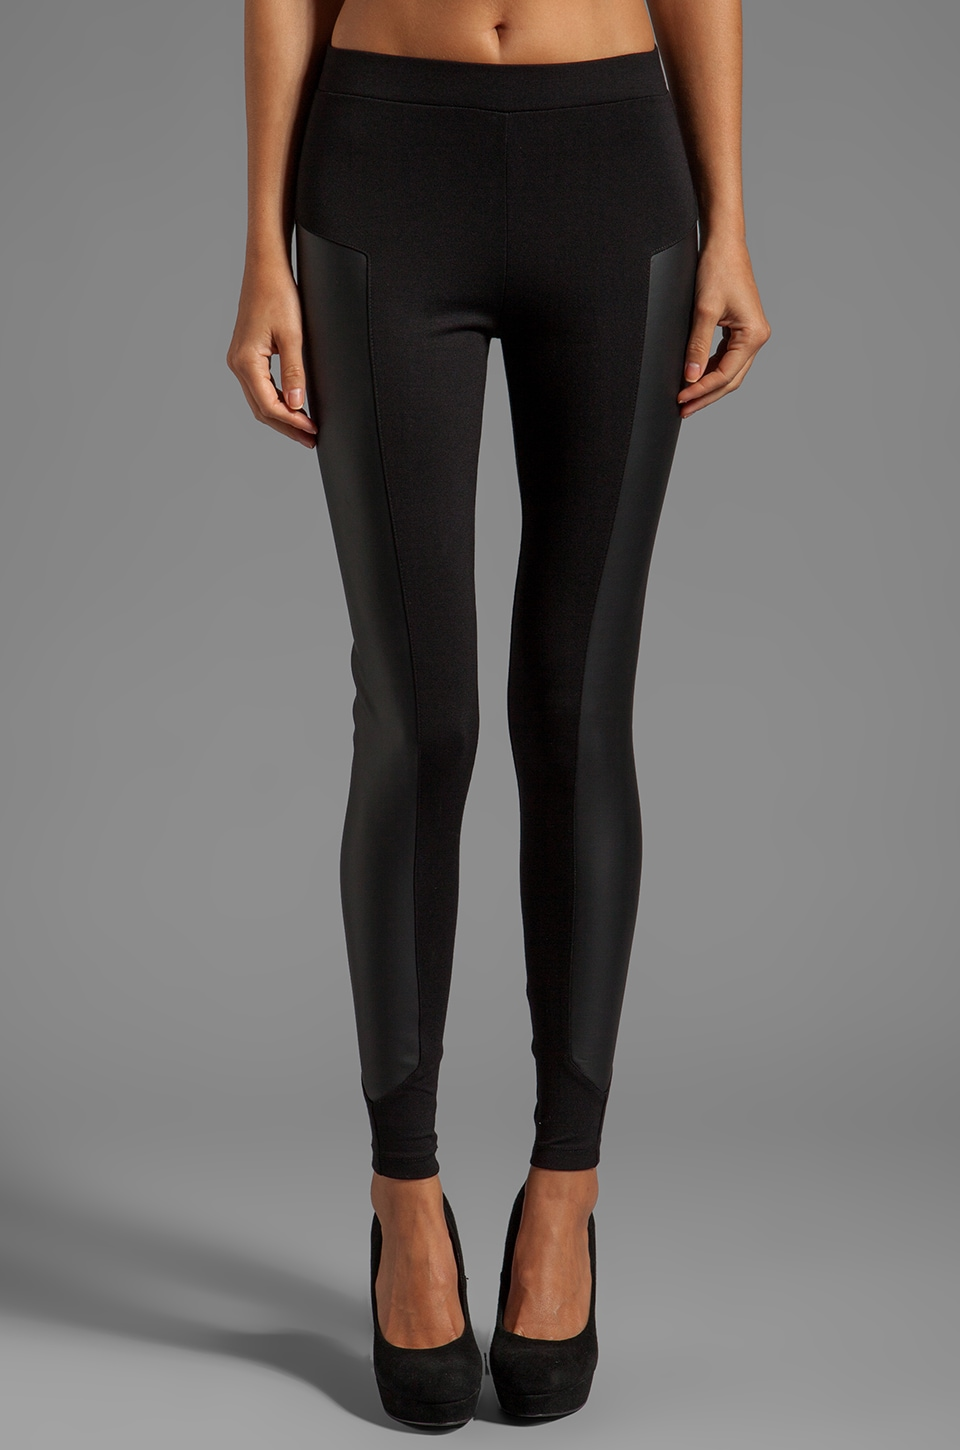 C&C California x Stephanie Ponte Legging With Leather Panel in Black